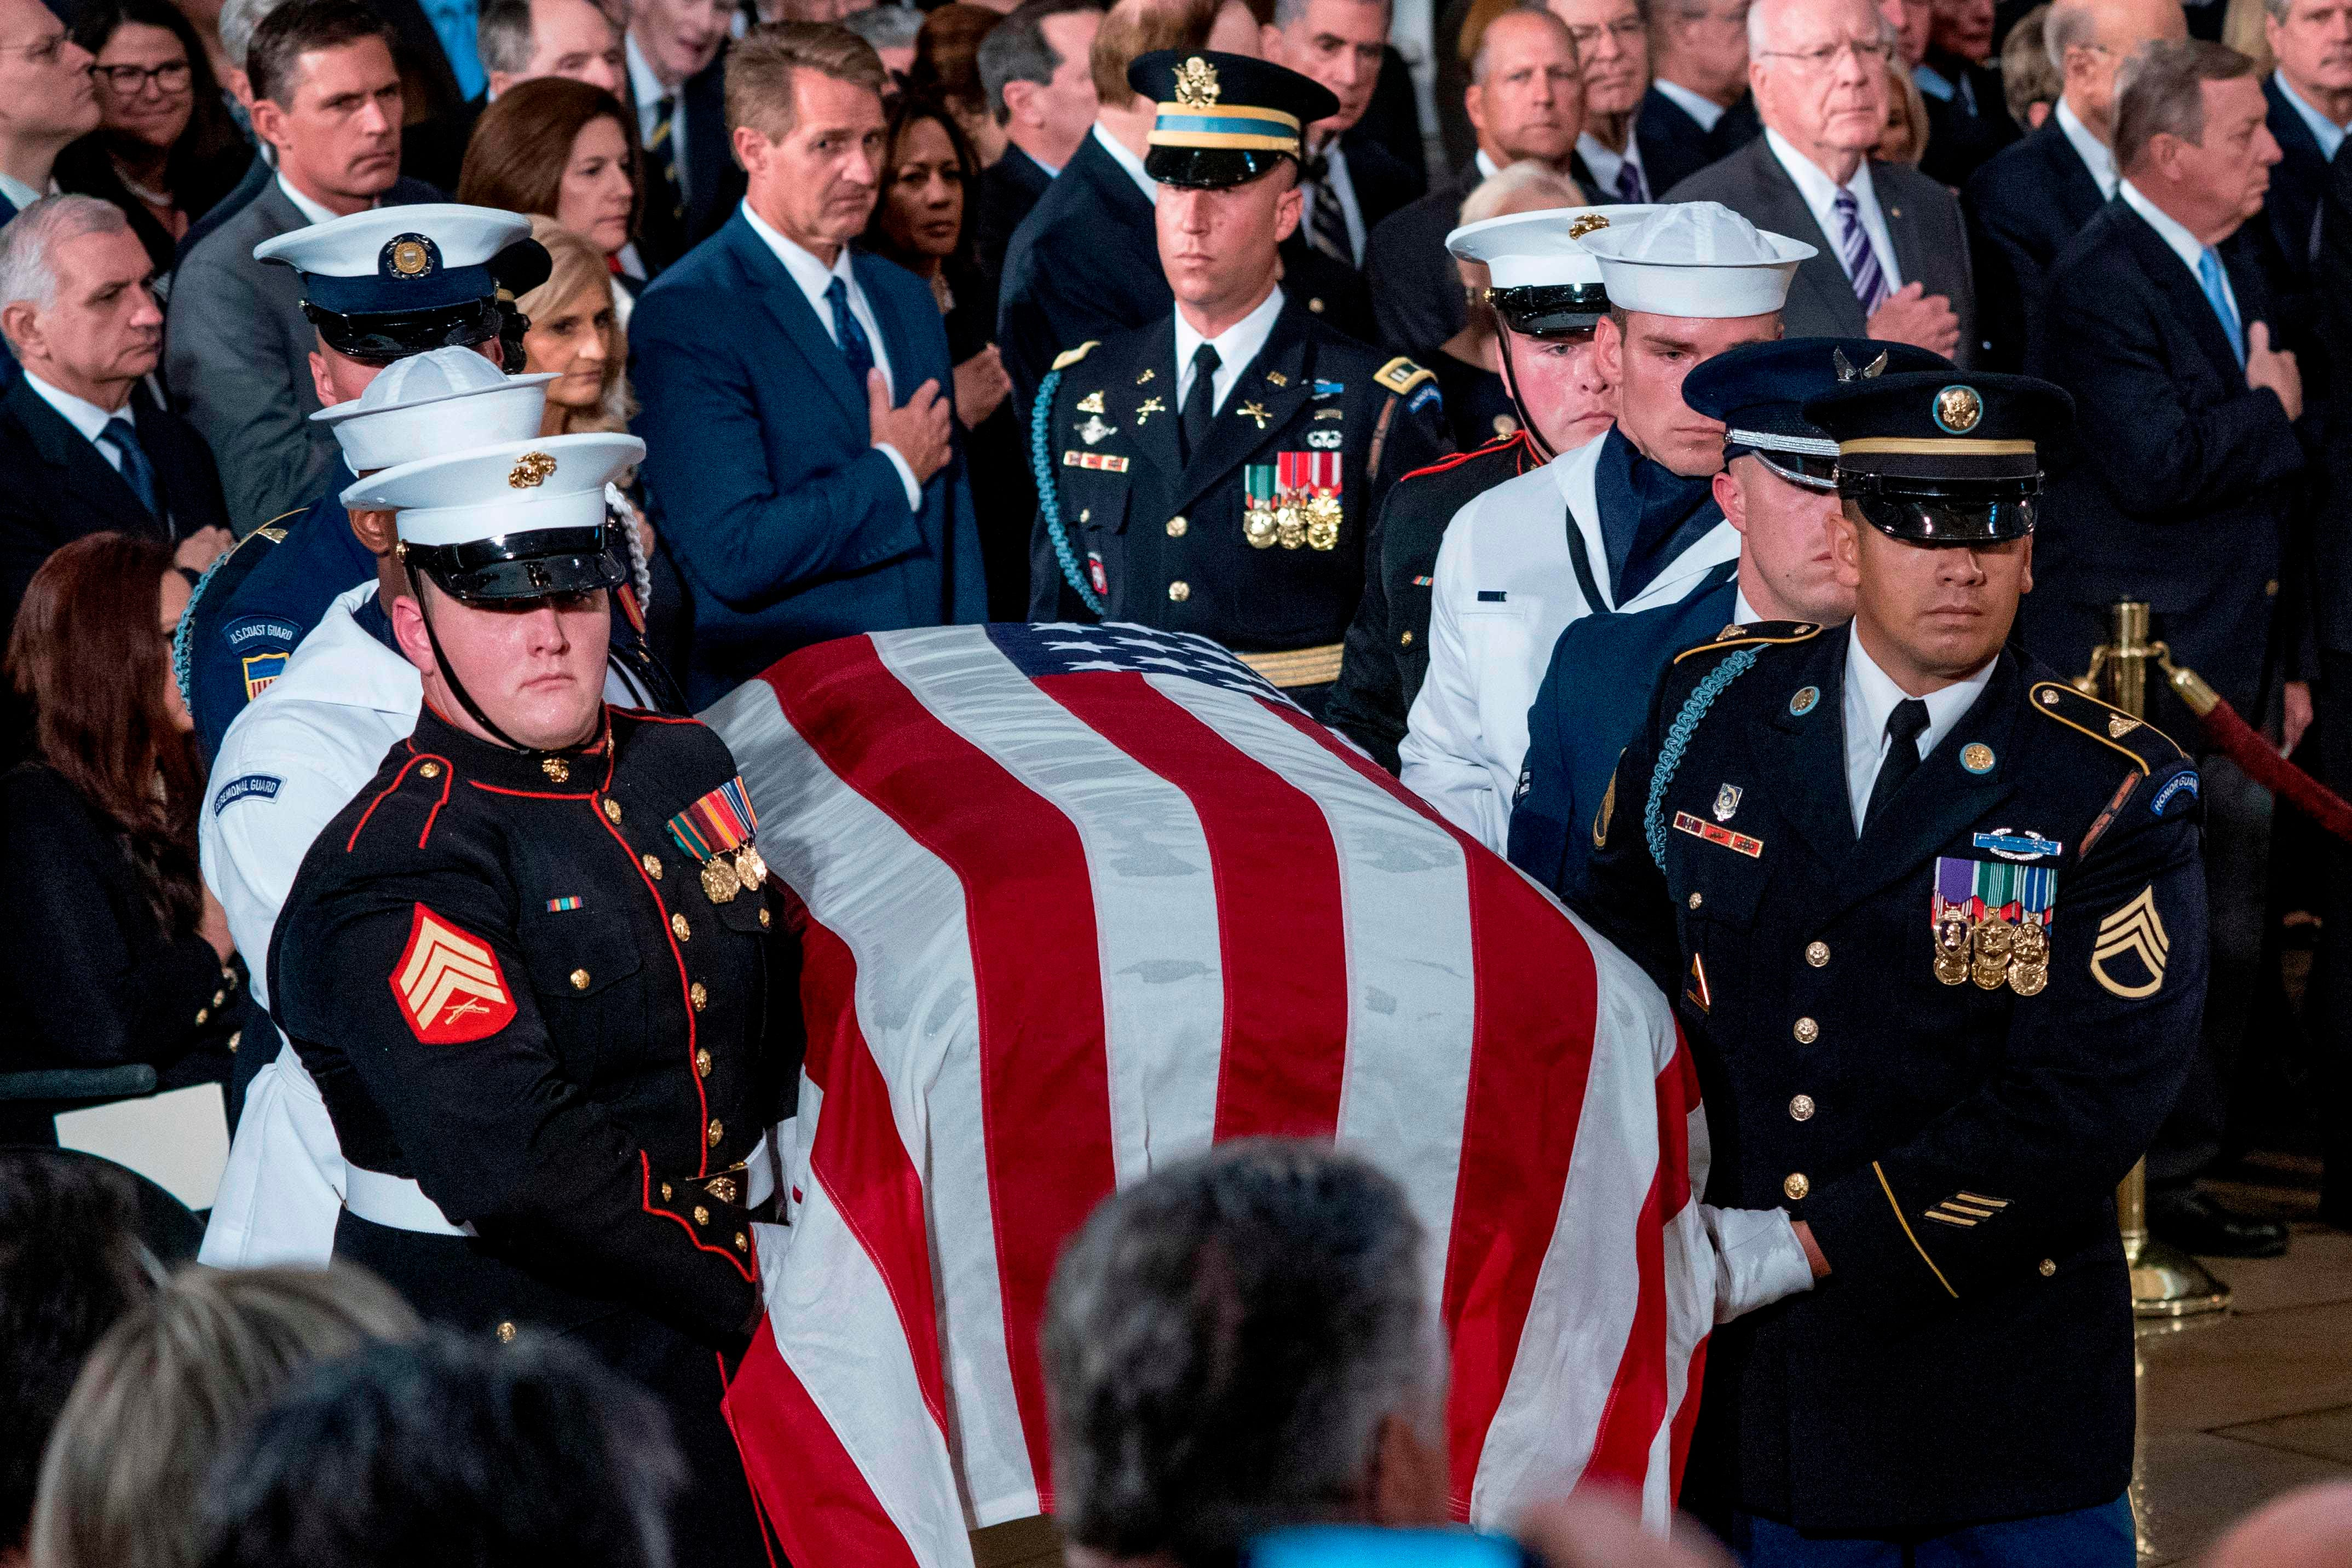 John McCain funeral, college football Saturday: 5 things to know this Labor Day weekend